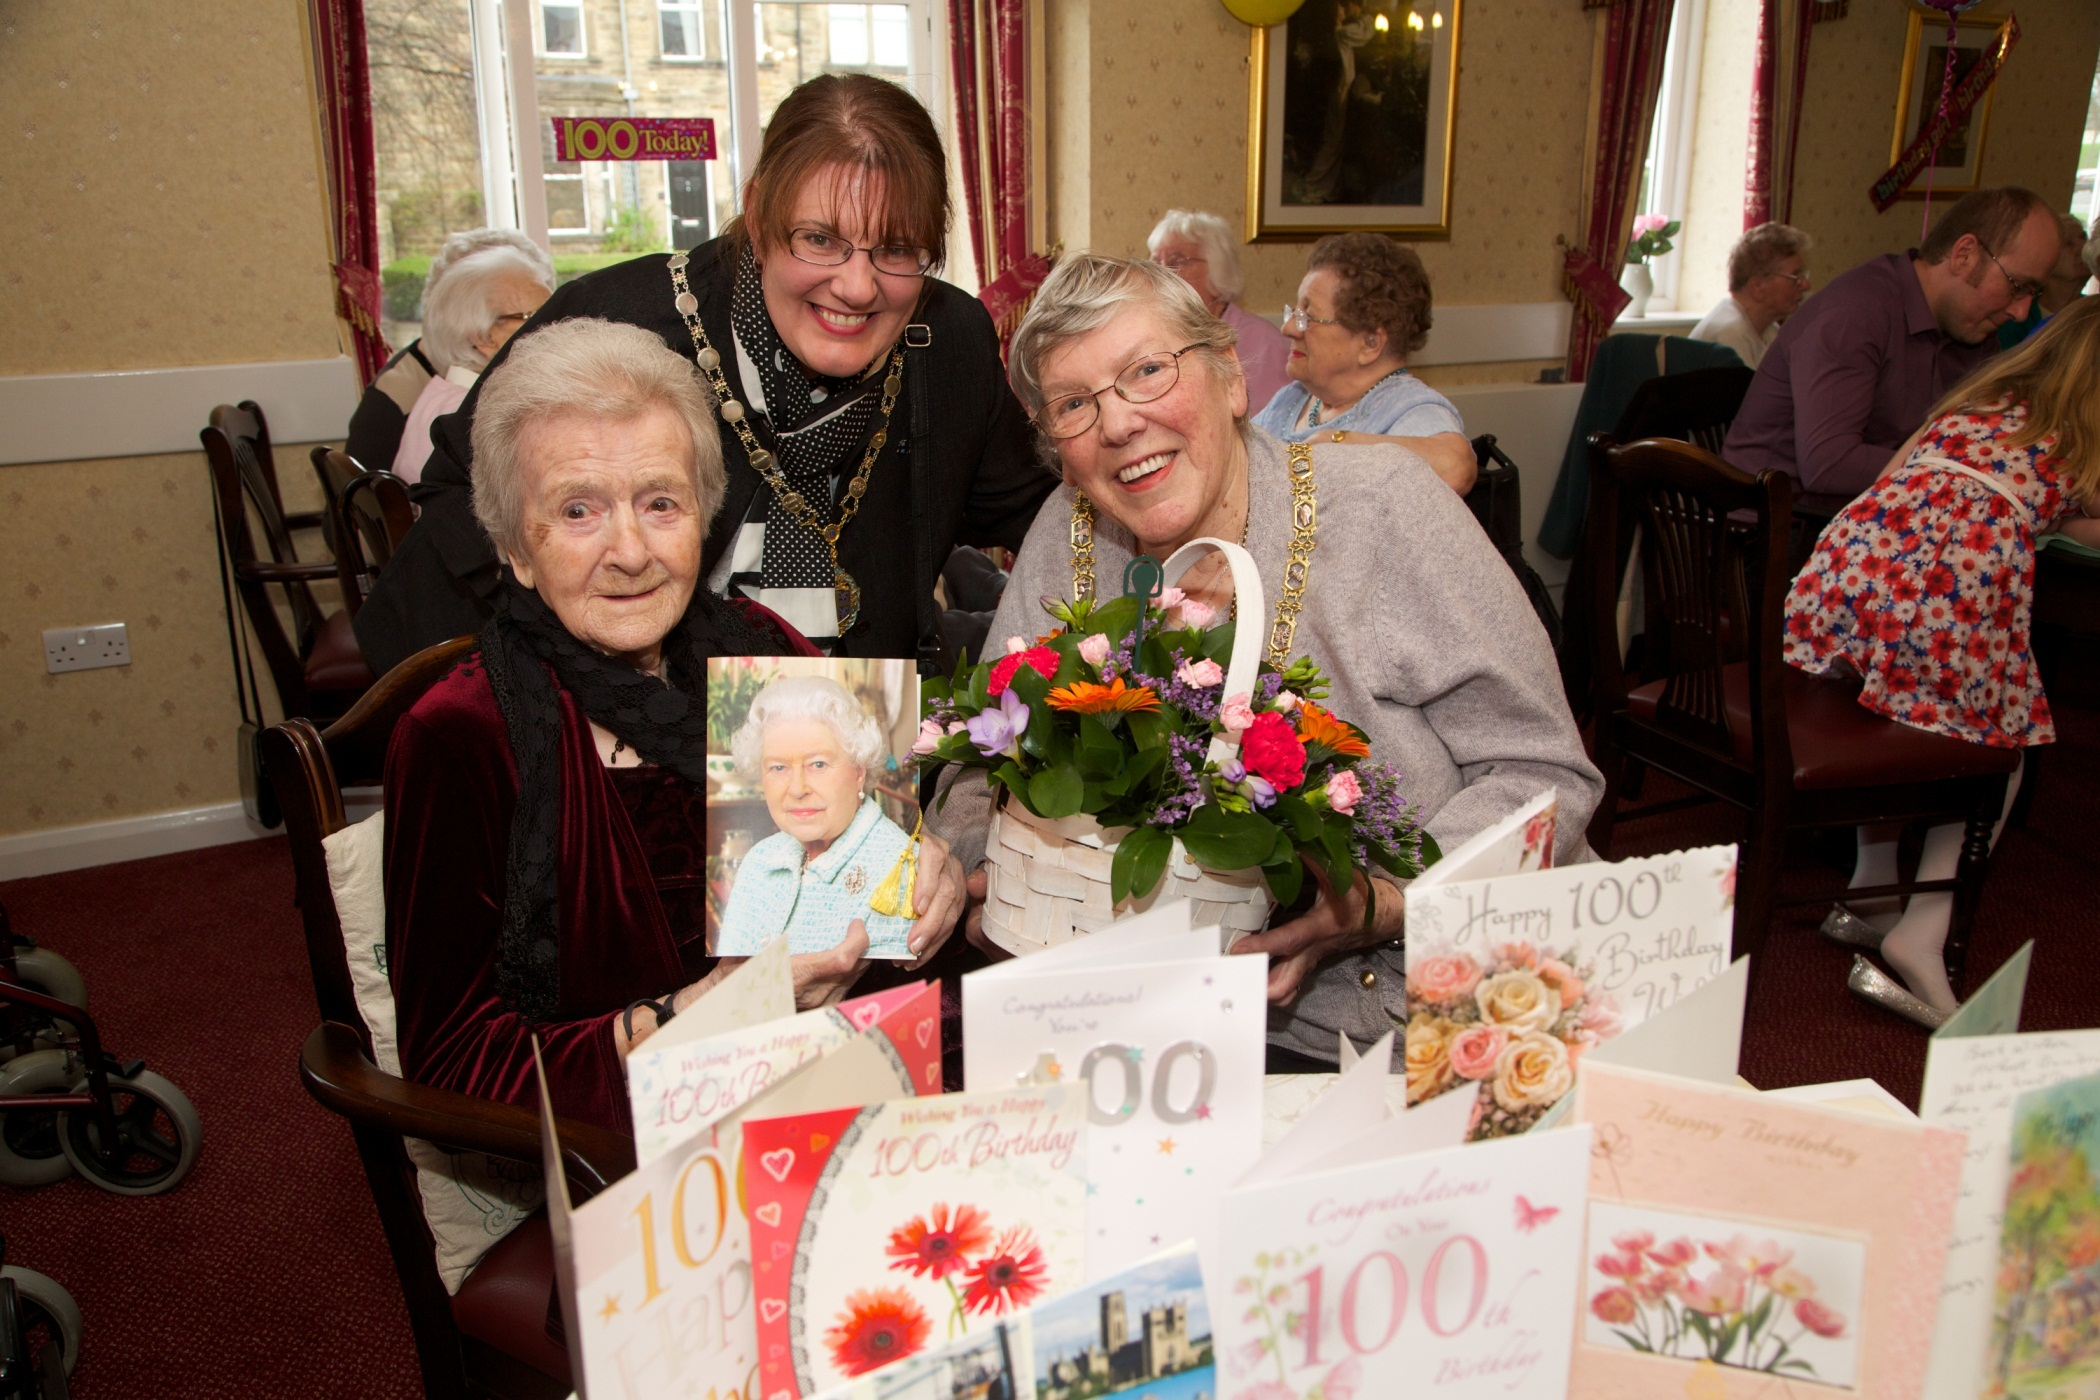 HAPPY BIRTHDAY: Centenarian Gladys Stirk celebrates with the chairman of Durham County Council, Councillor Pauline Charlton who along with her daughter and consort, Susie Charlton, presented her with a basket of flowers.